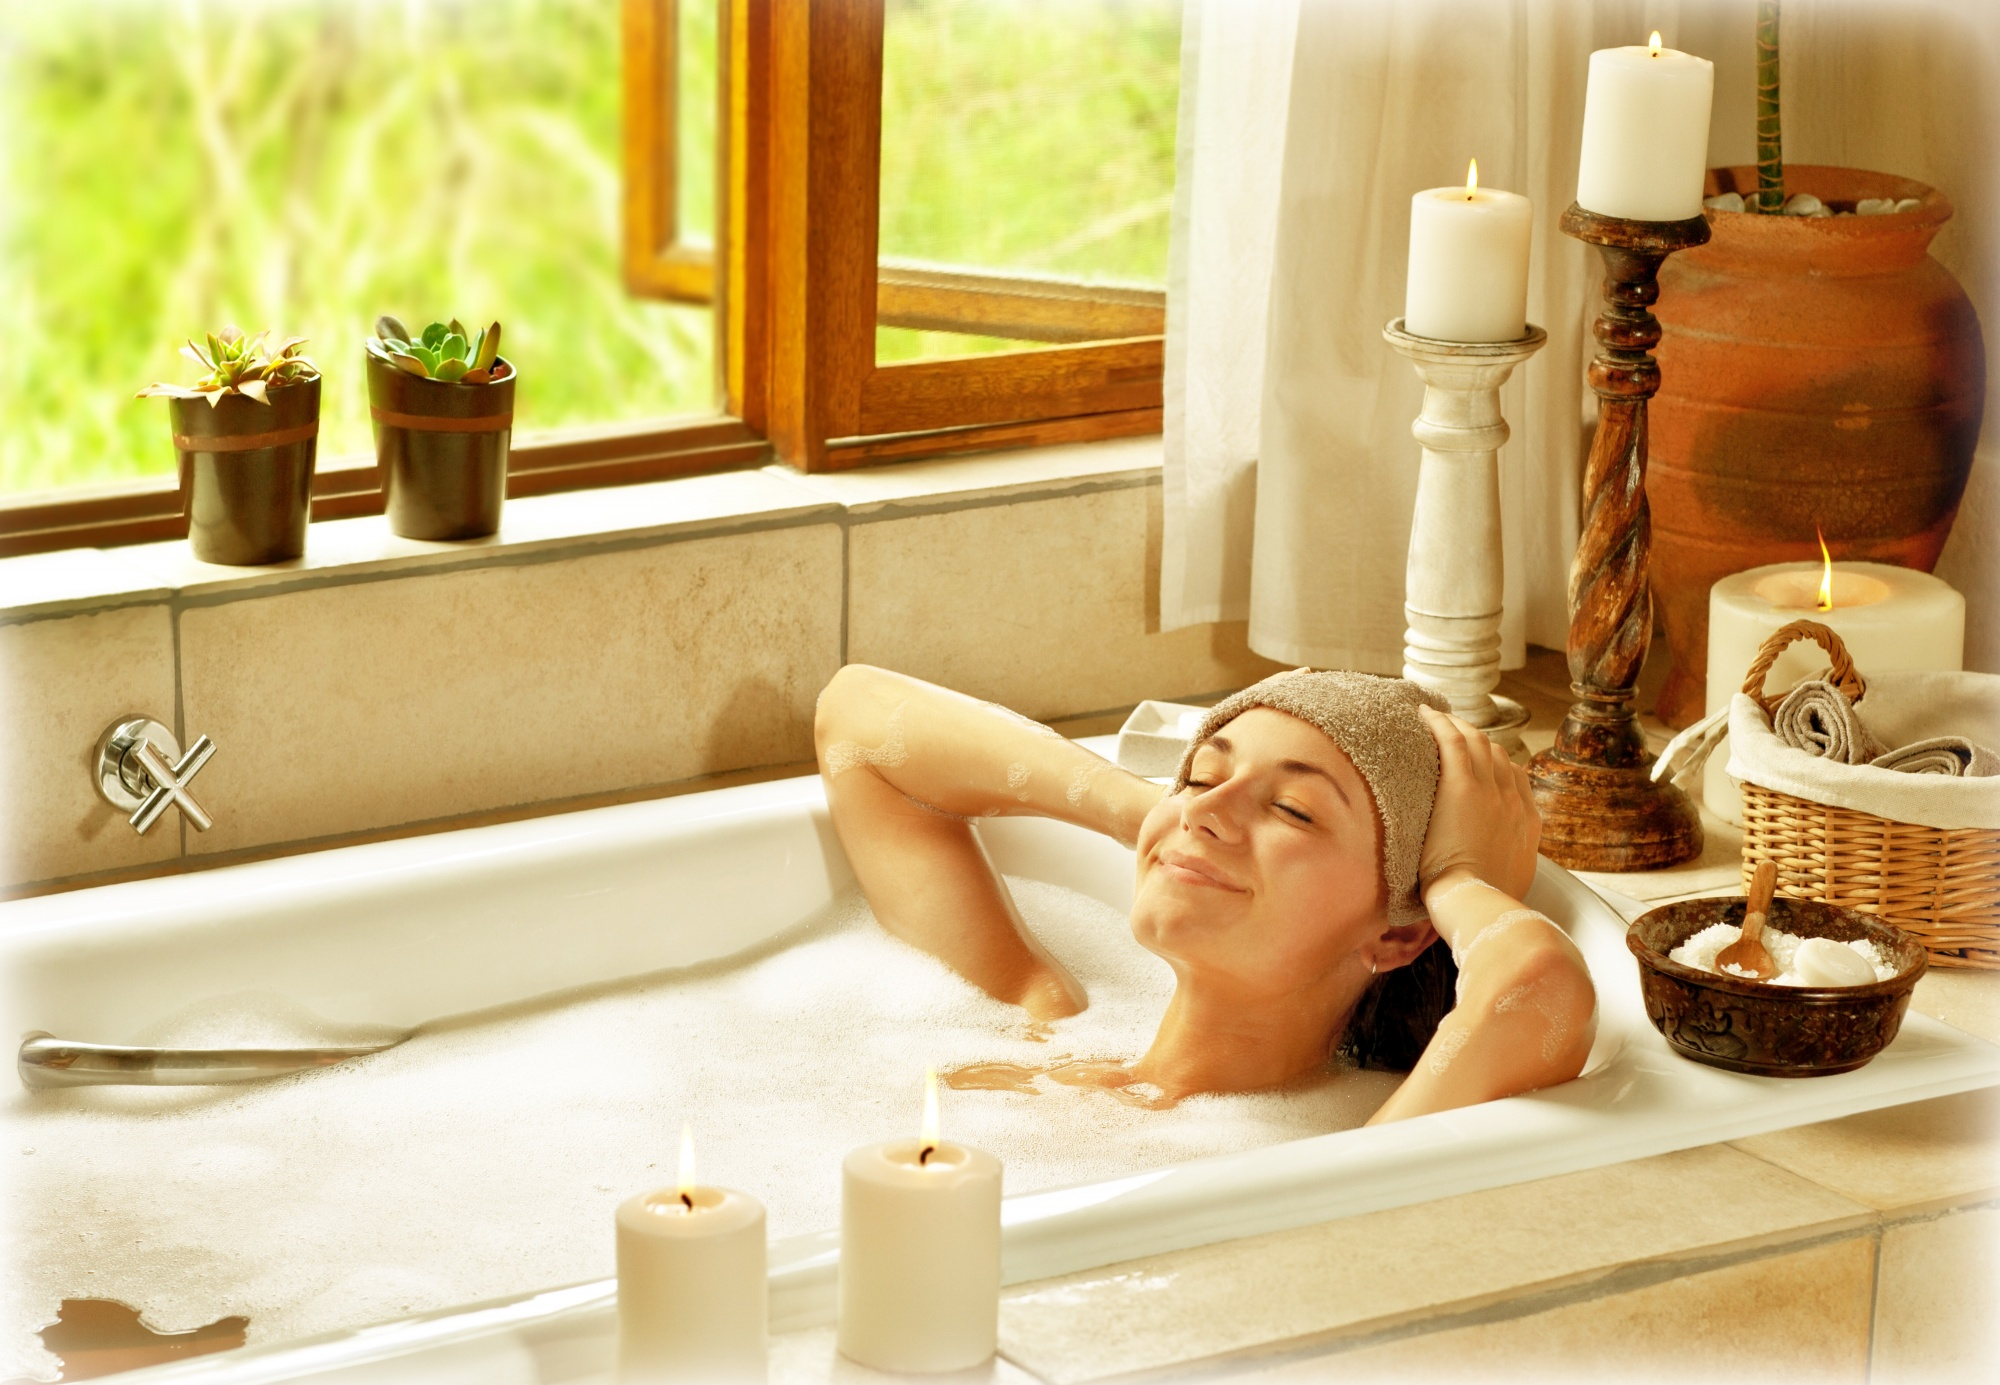 Woman with dark hair taking a relaxing bubble bath - Best things for a relaxing bath, you deserve a relaxing bath, how to have a relaxing bath